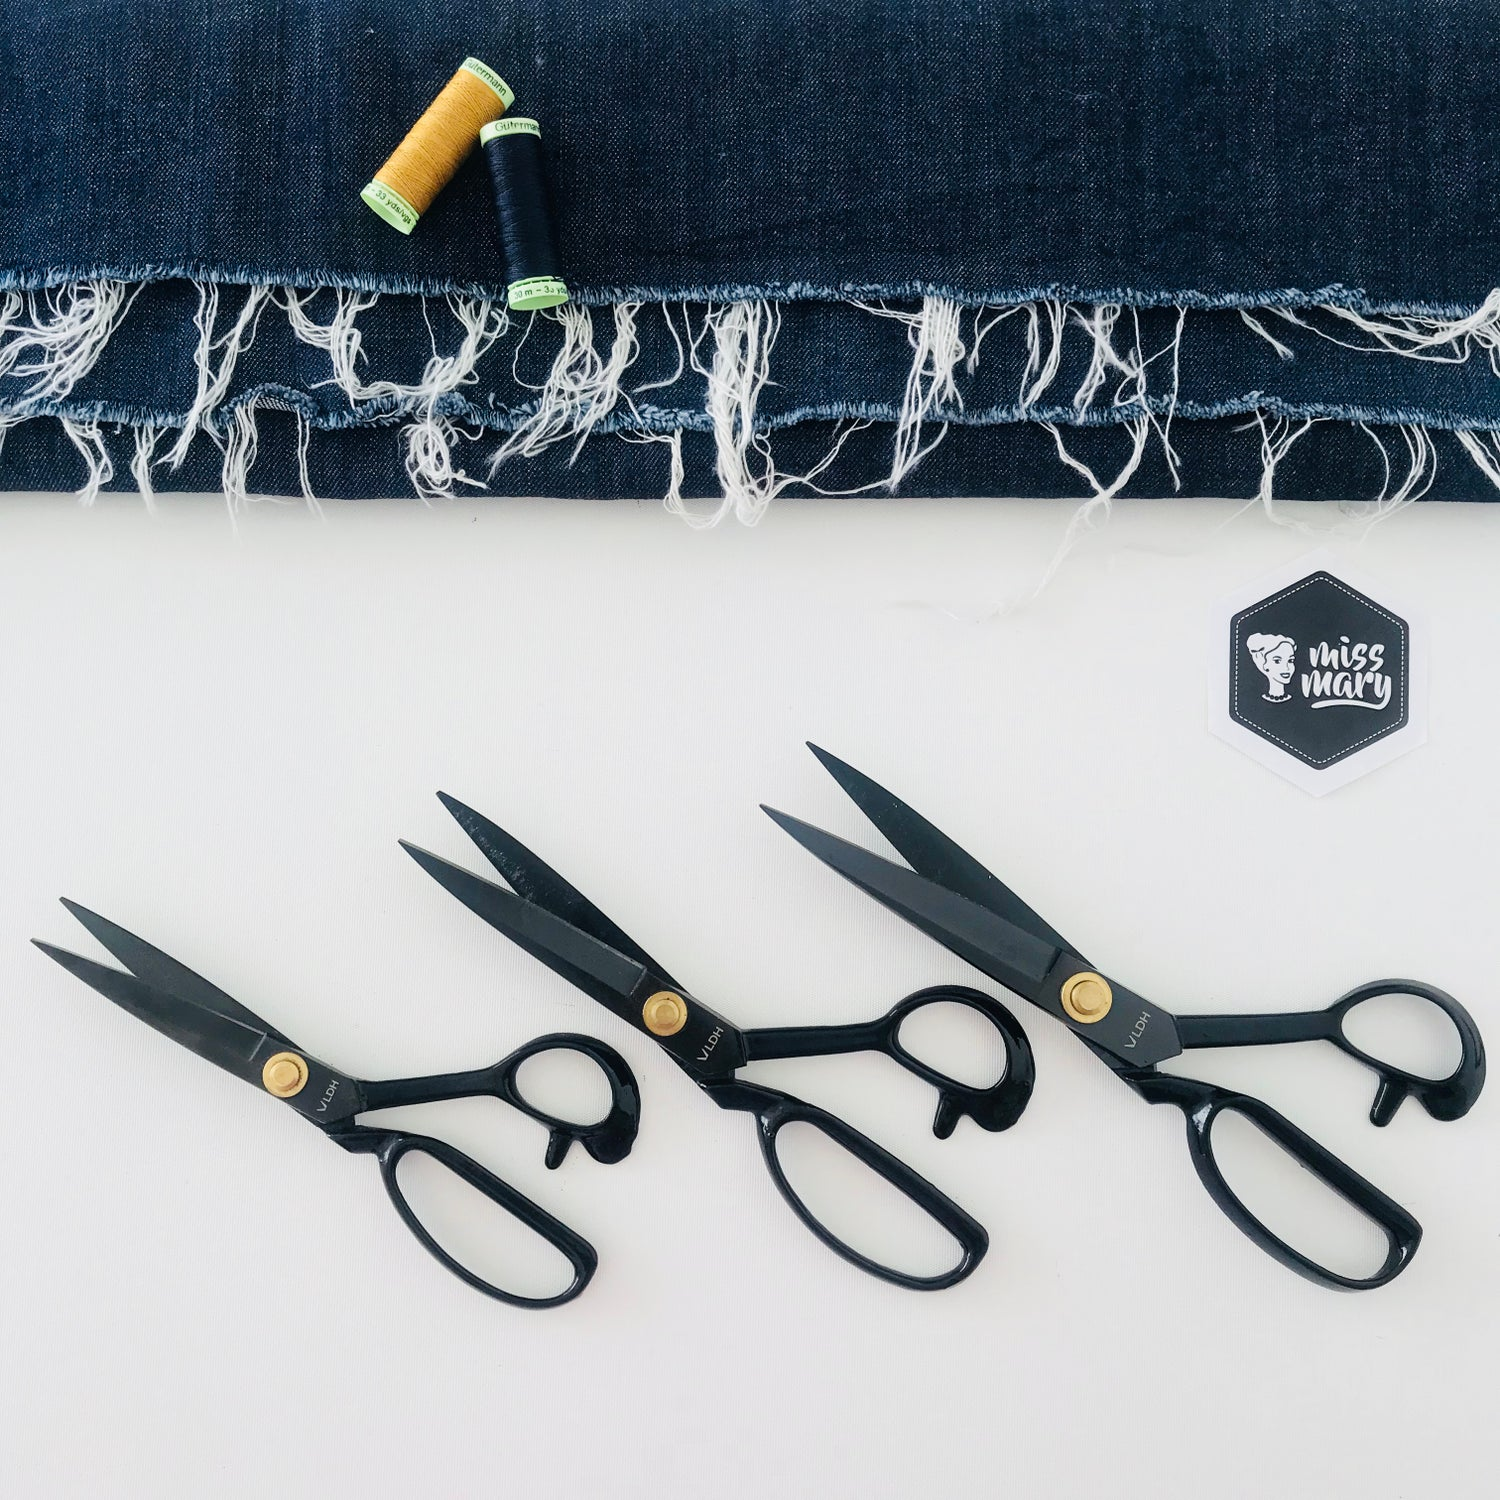 Image of Dressmaking Scissors